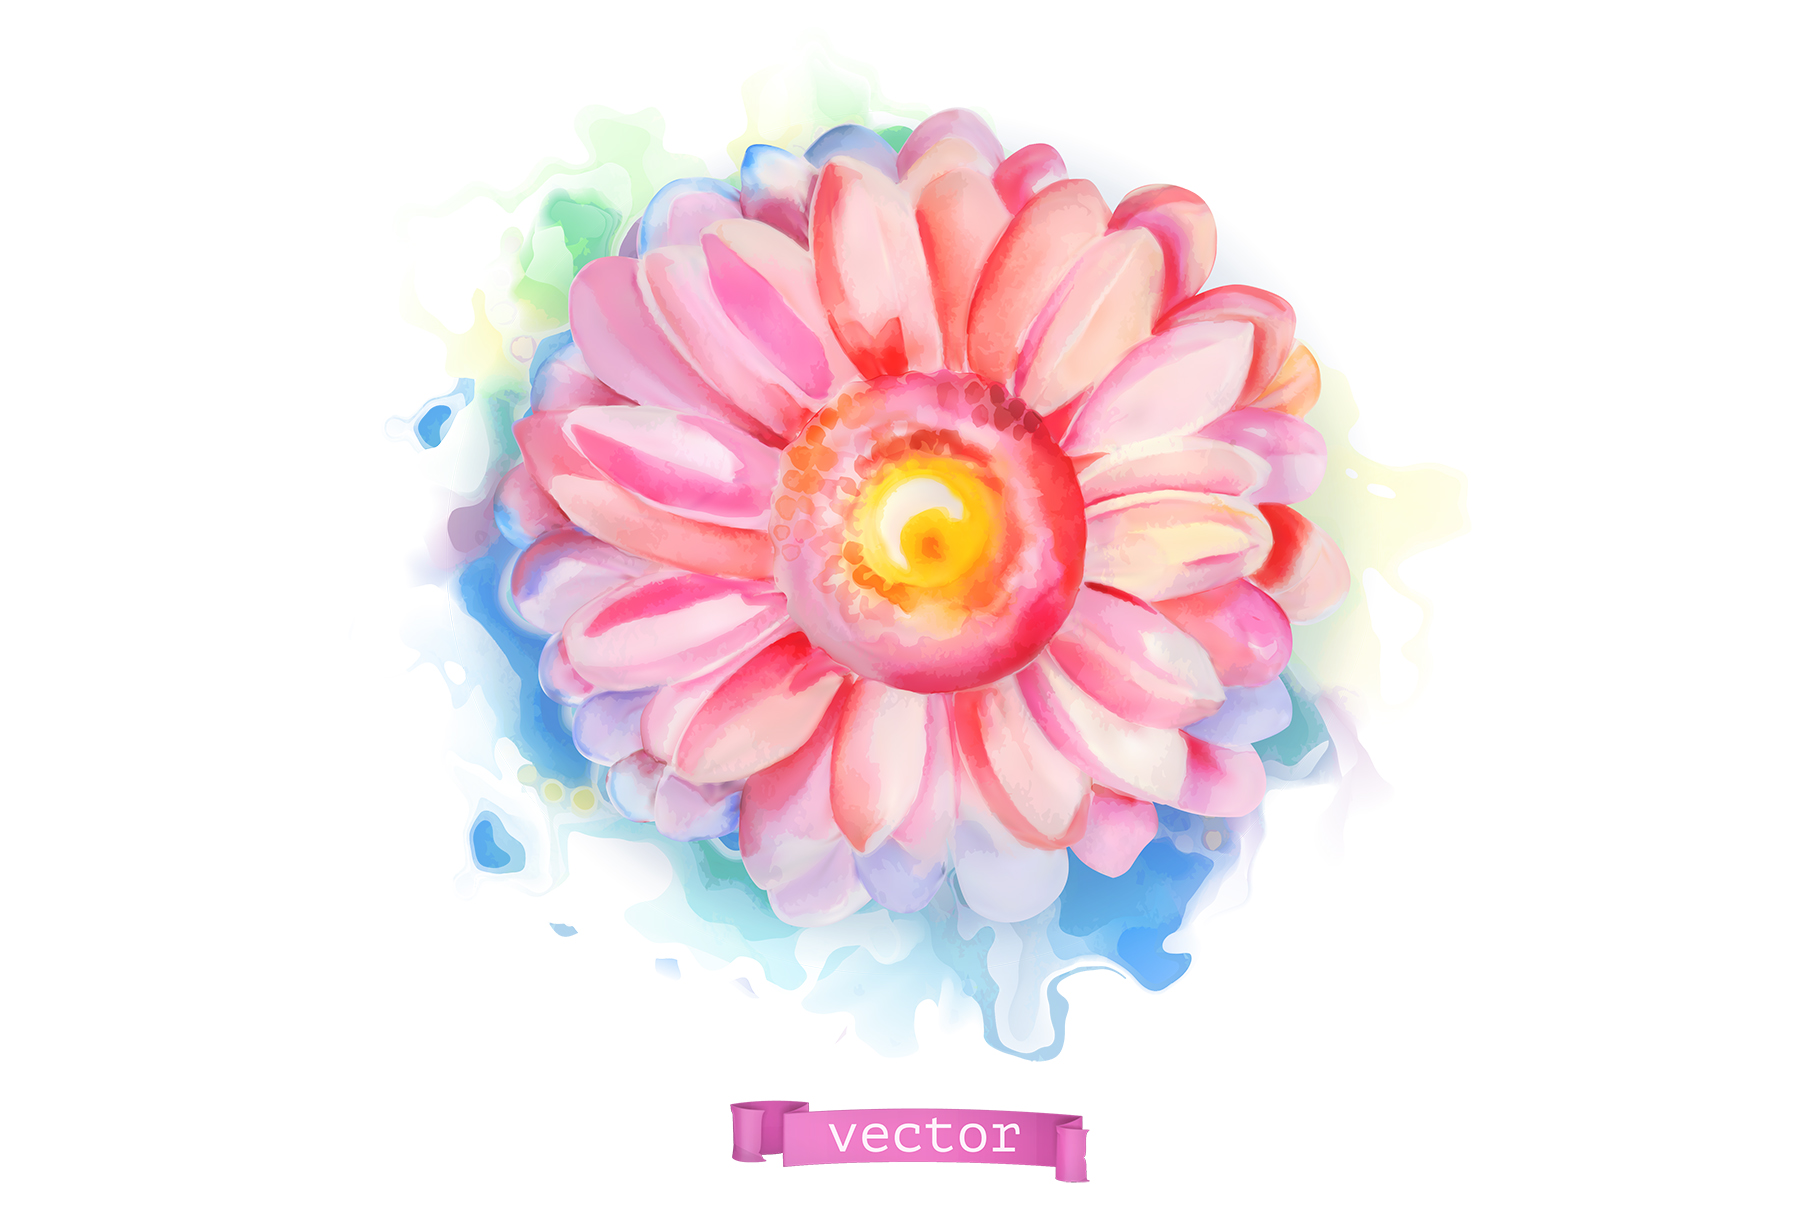 Flowers set. Rose and other plants. Watercolor, vector icons example image 7